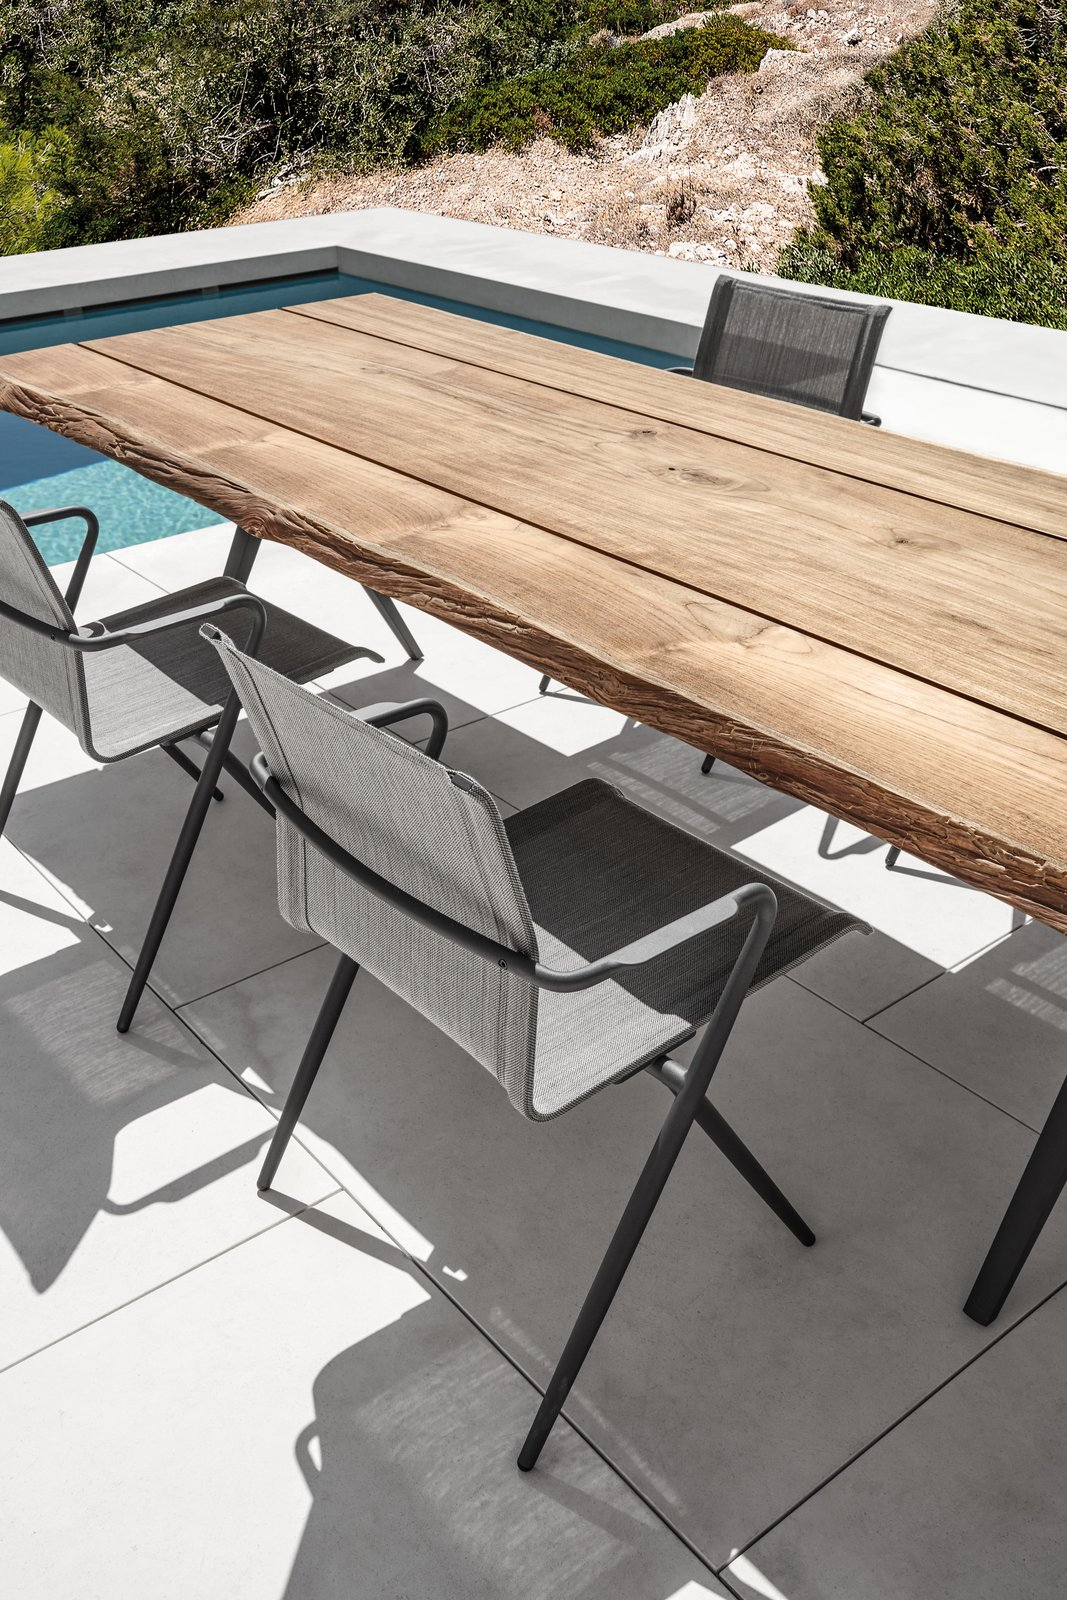 Stackable Ryder dining chair in a dark version in contrast to the limited edition teak table Split Raw. Tagged: Chair, Table, Outdoor, Large Pools, Tubs, Shower, Small Pools, Tubs, Shower, Swimming Pools, Tubs, Shower, Large Patio, Porch, Deck, Hardscapes, Small Patio, Porch, Deck, Back Yard, and Tile Patio, Porch, Deck.  Dining Chairs by Gloster Furniture